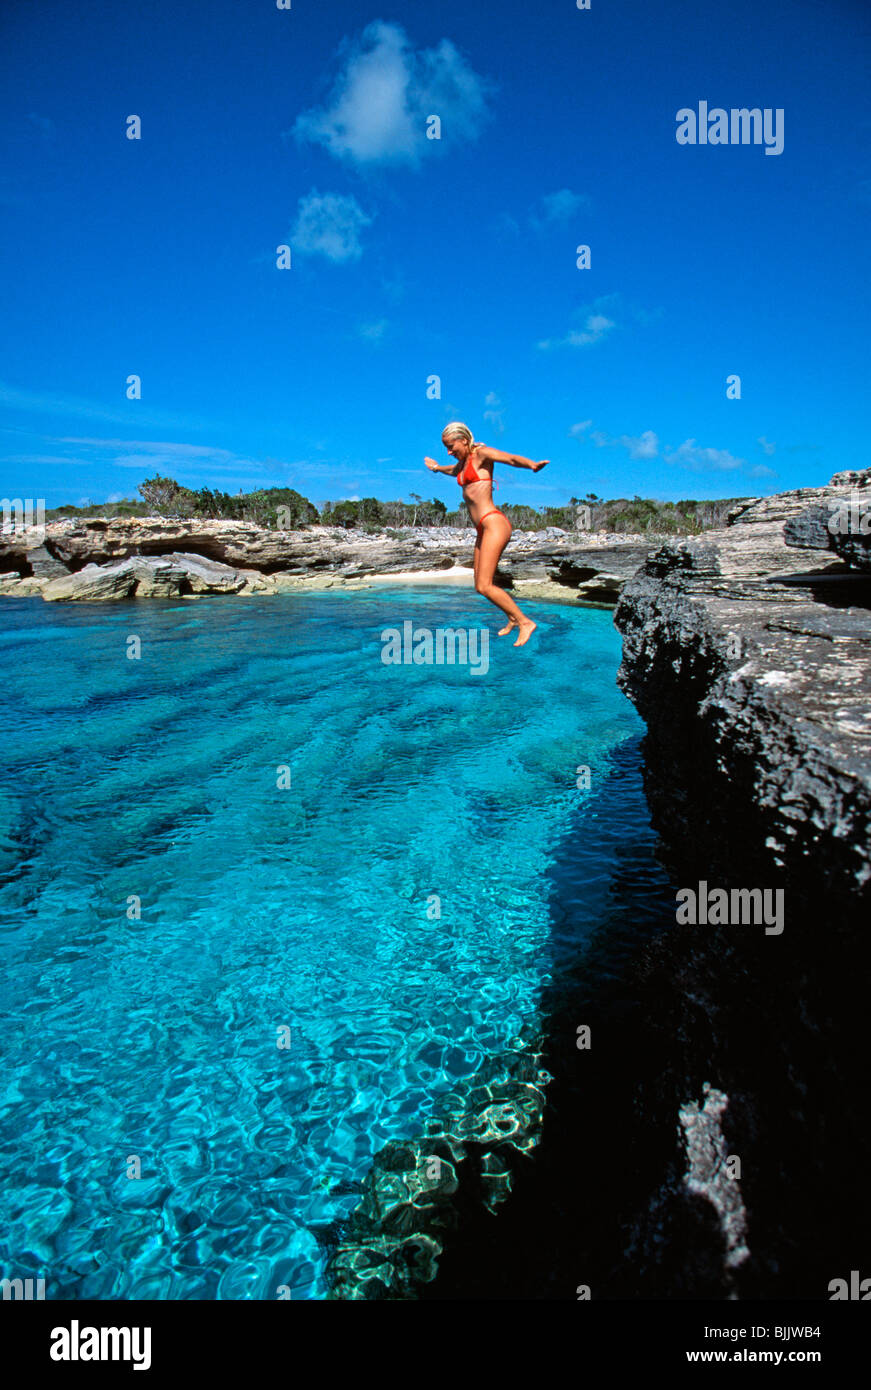 Turks Caicos Islands Providenciales Woman Jumping Off Rock Wall